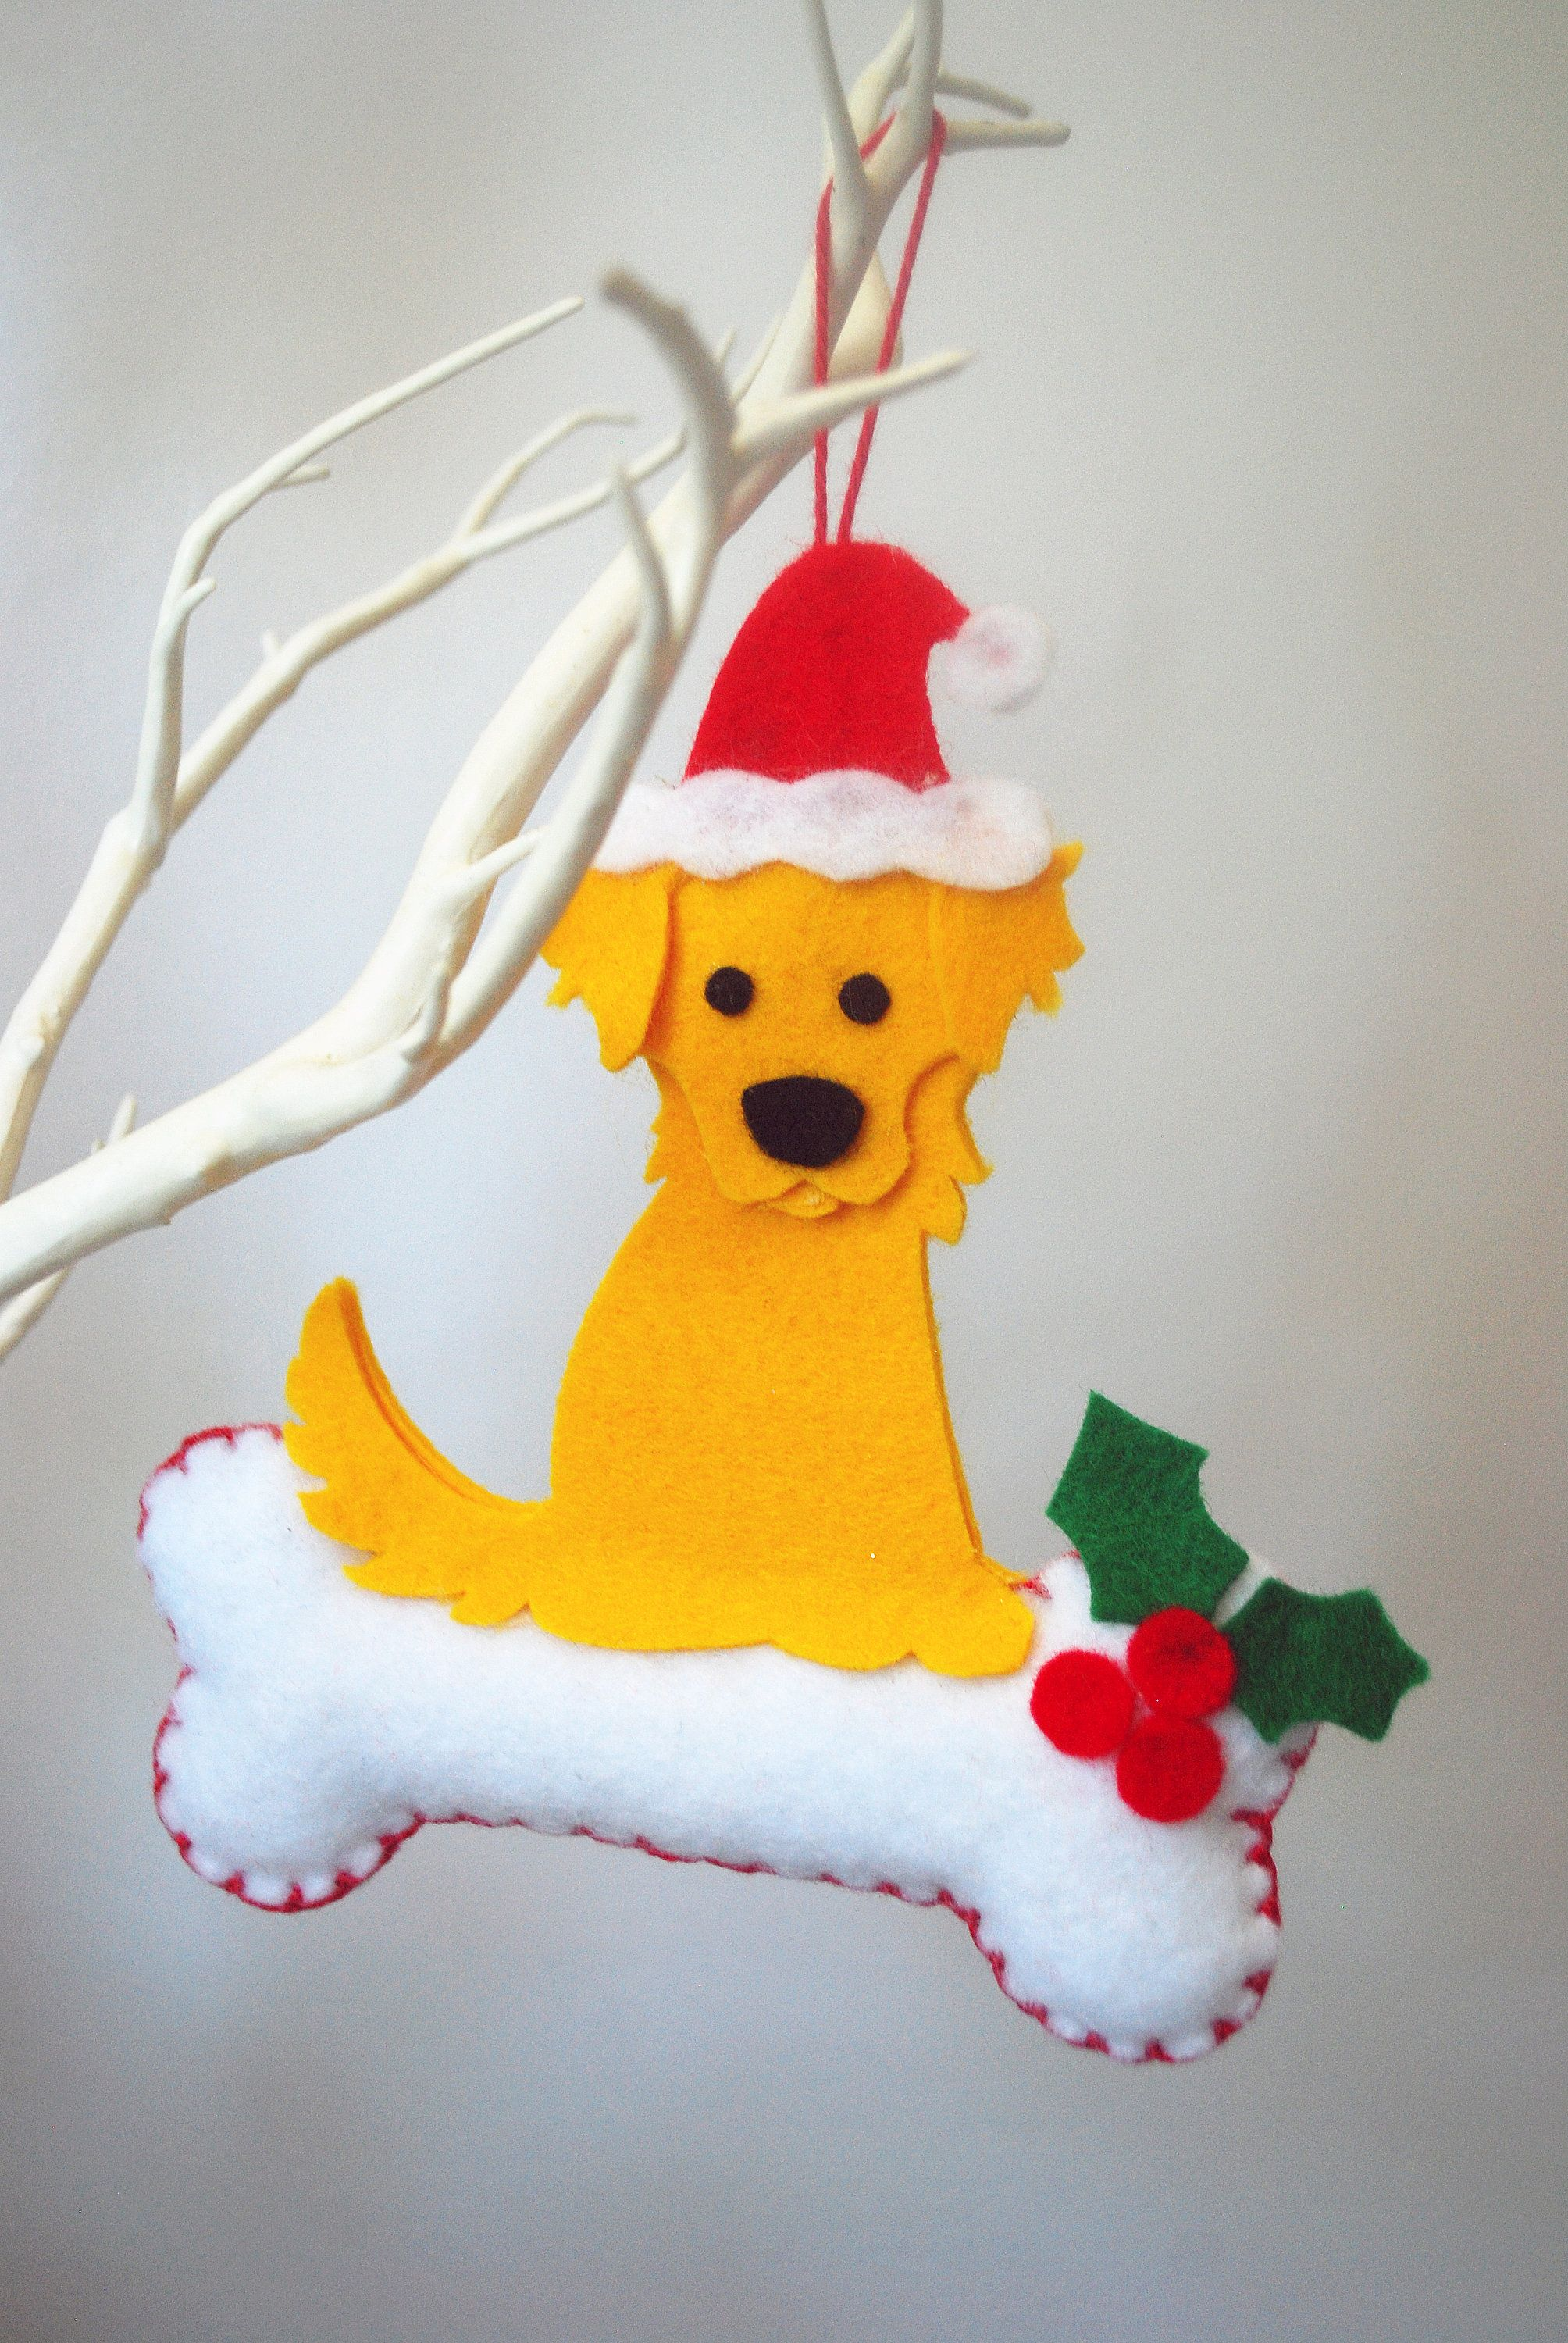 Next Breed Added To The #Etsy Shop #Goldenretriever Hanging Ornament,